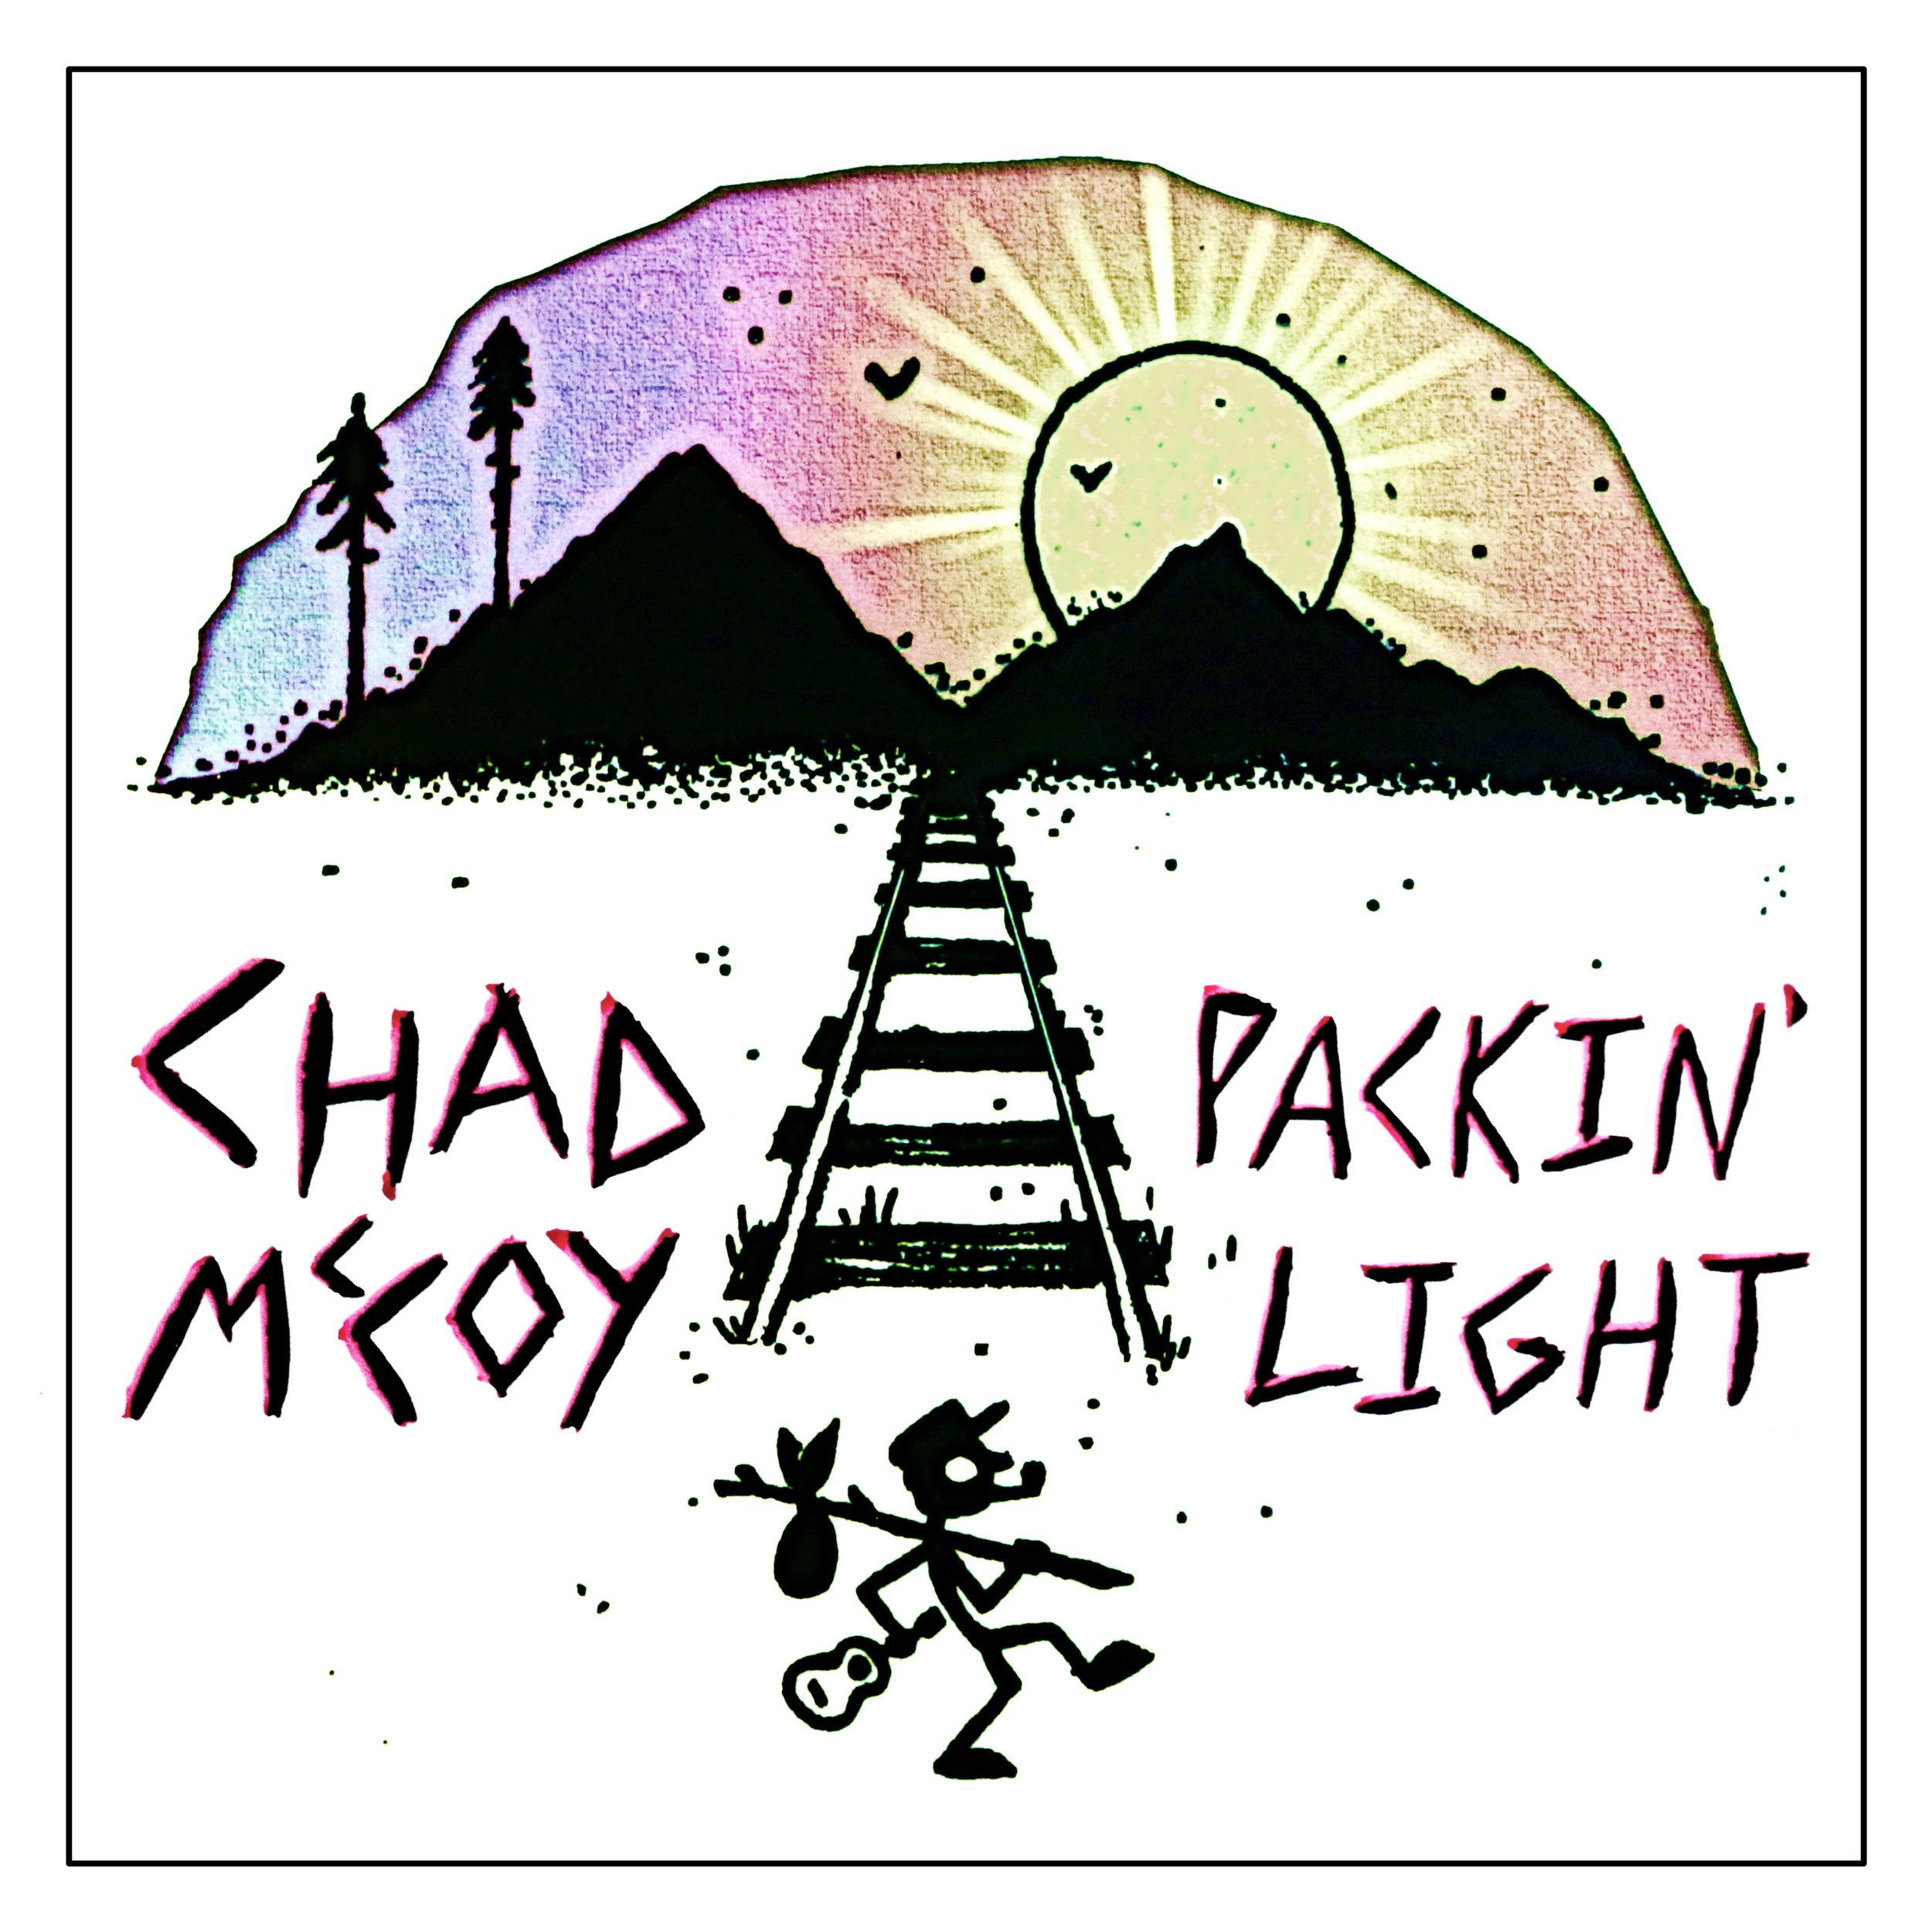 Packin' Light E.P. - Released Feb 2019 - Produced by Siegfried Meier and Chad McCoy